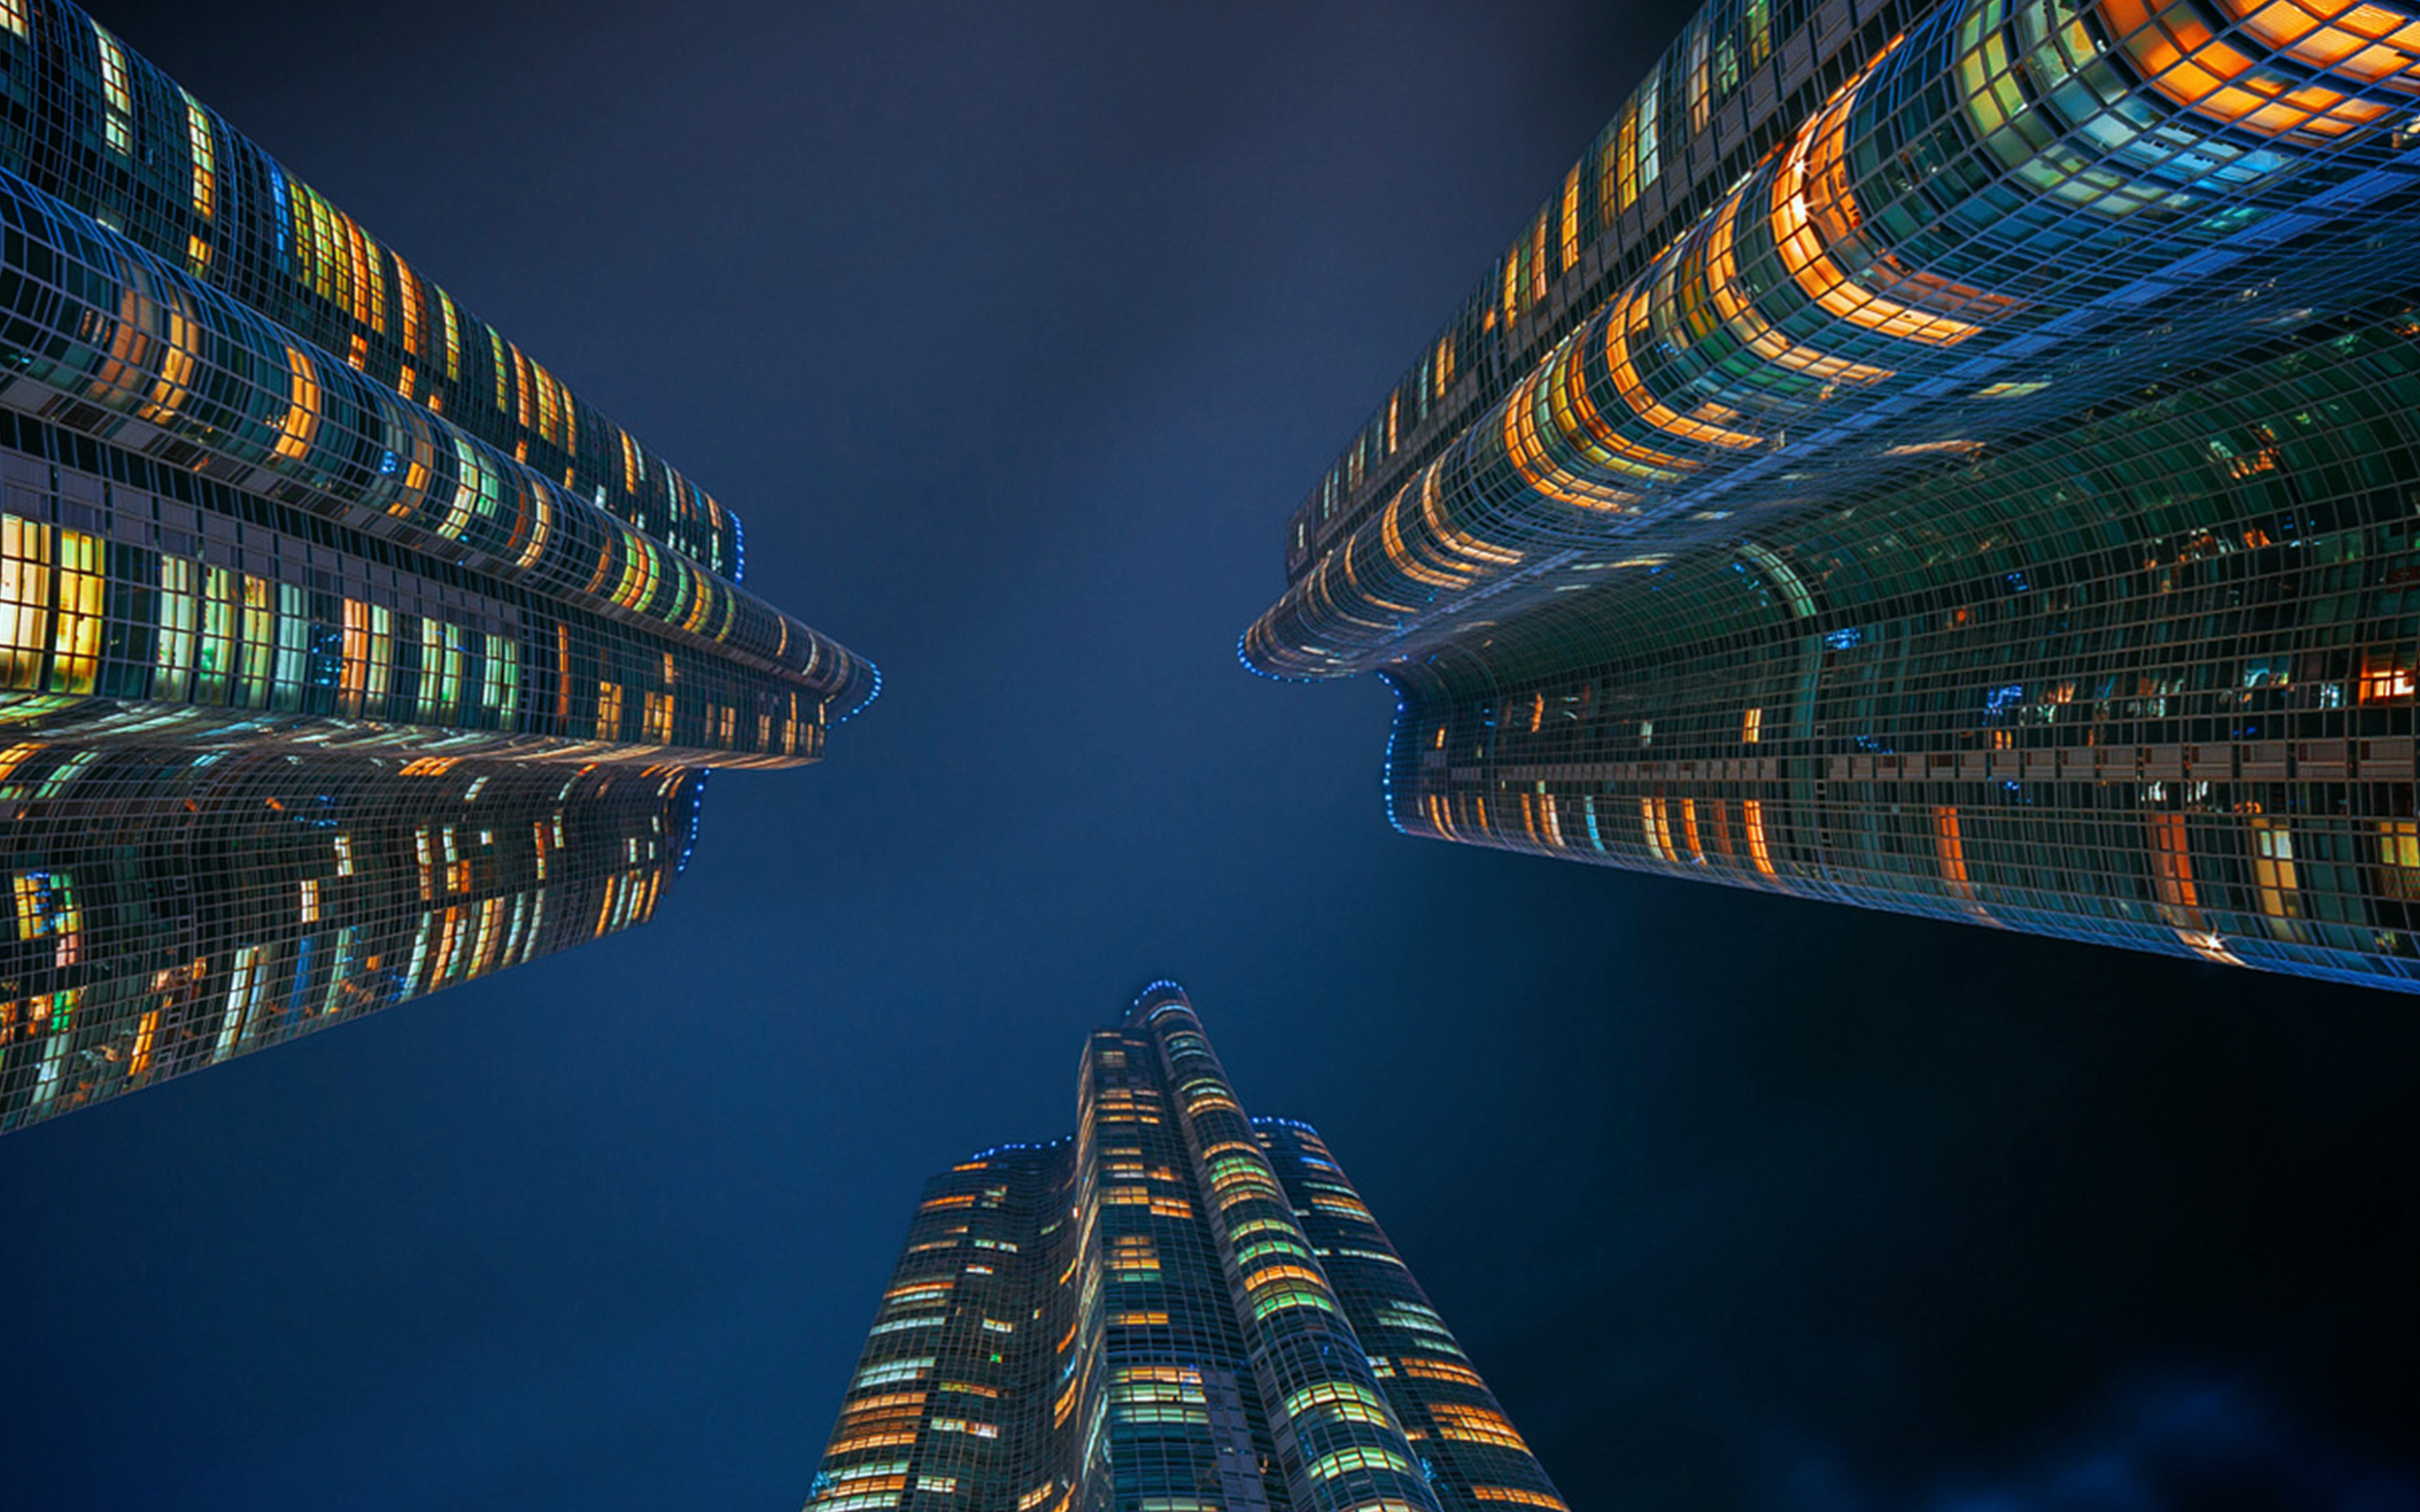 Cute Fall Wallpaper Iphone 5 Nu81 Building Tower Night Architecture City Nature Wallpaper